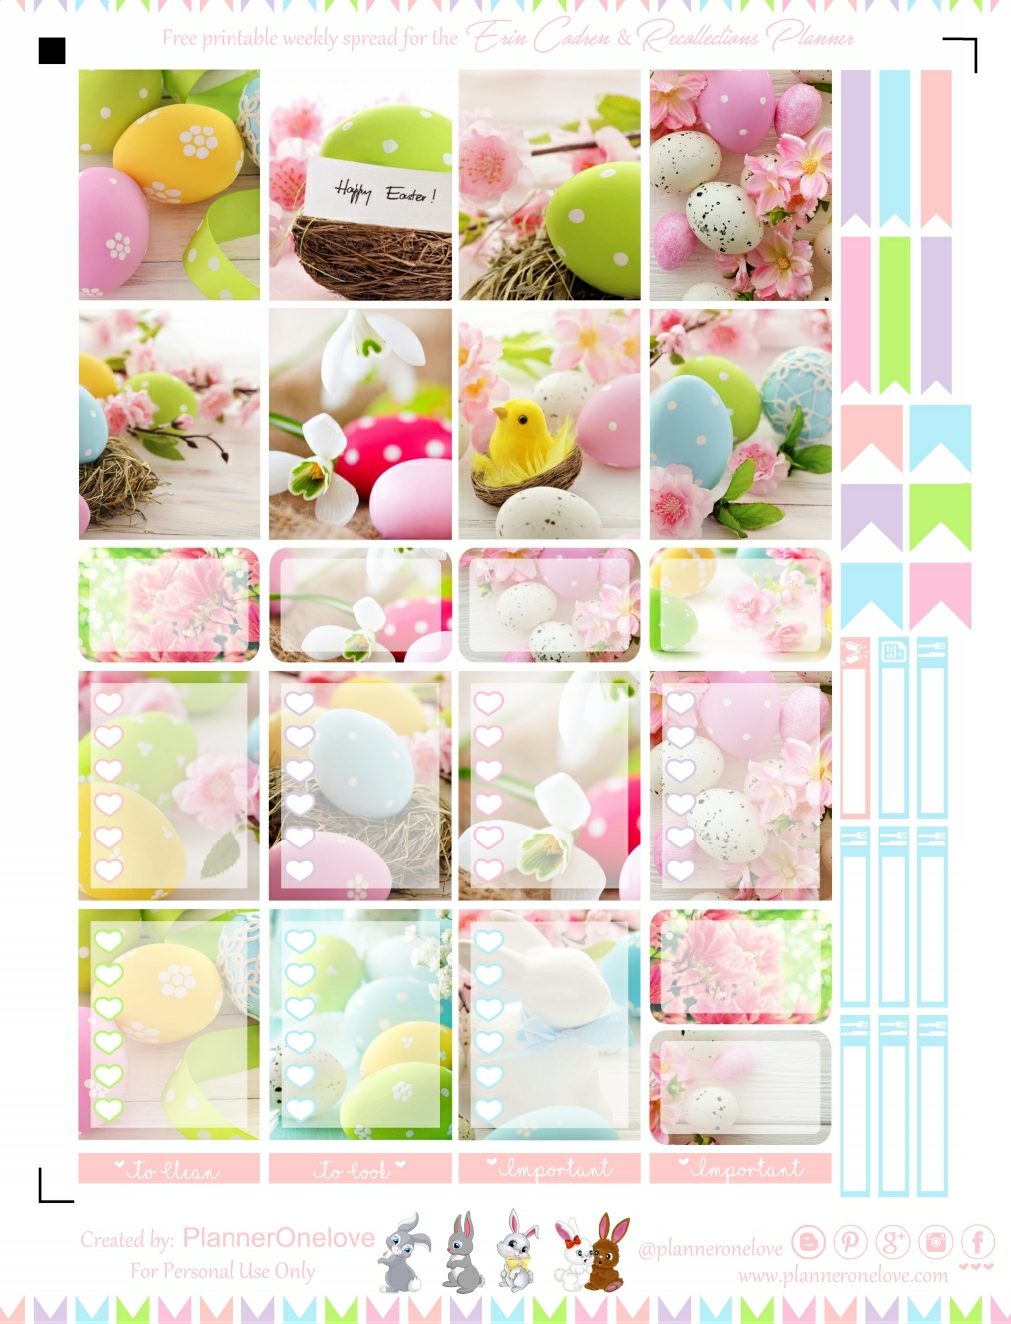 photograph about Free Printable Planner Stickers Pdf named Absolutely free Content Easter Printable Planner Stickers For The Erin